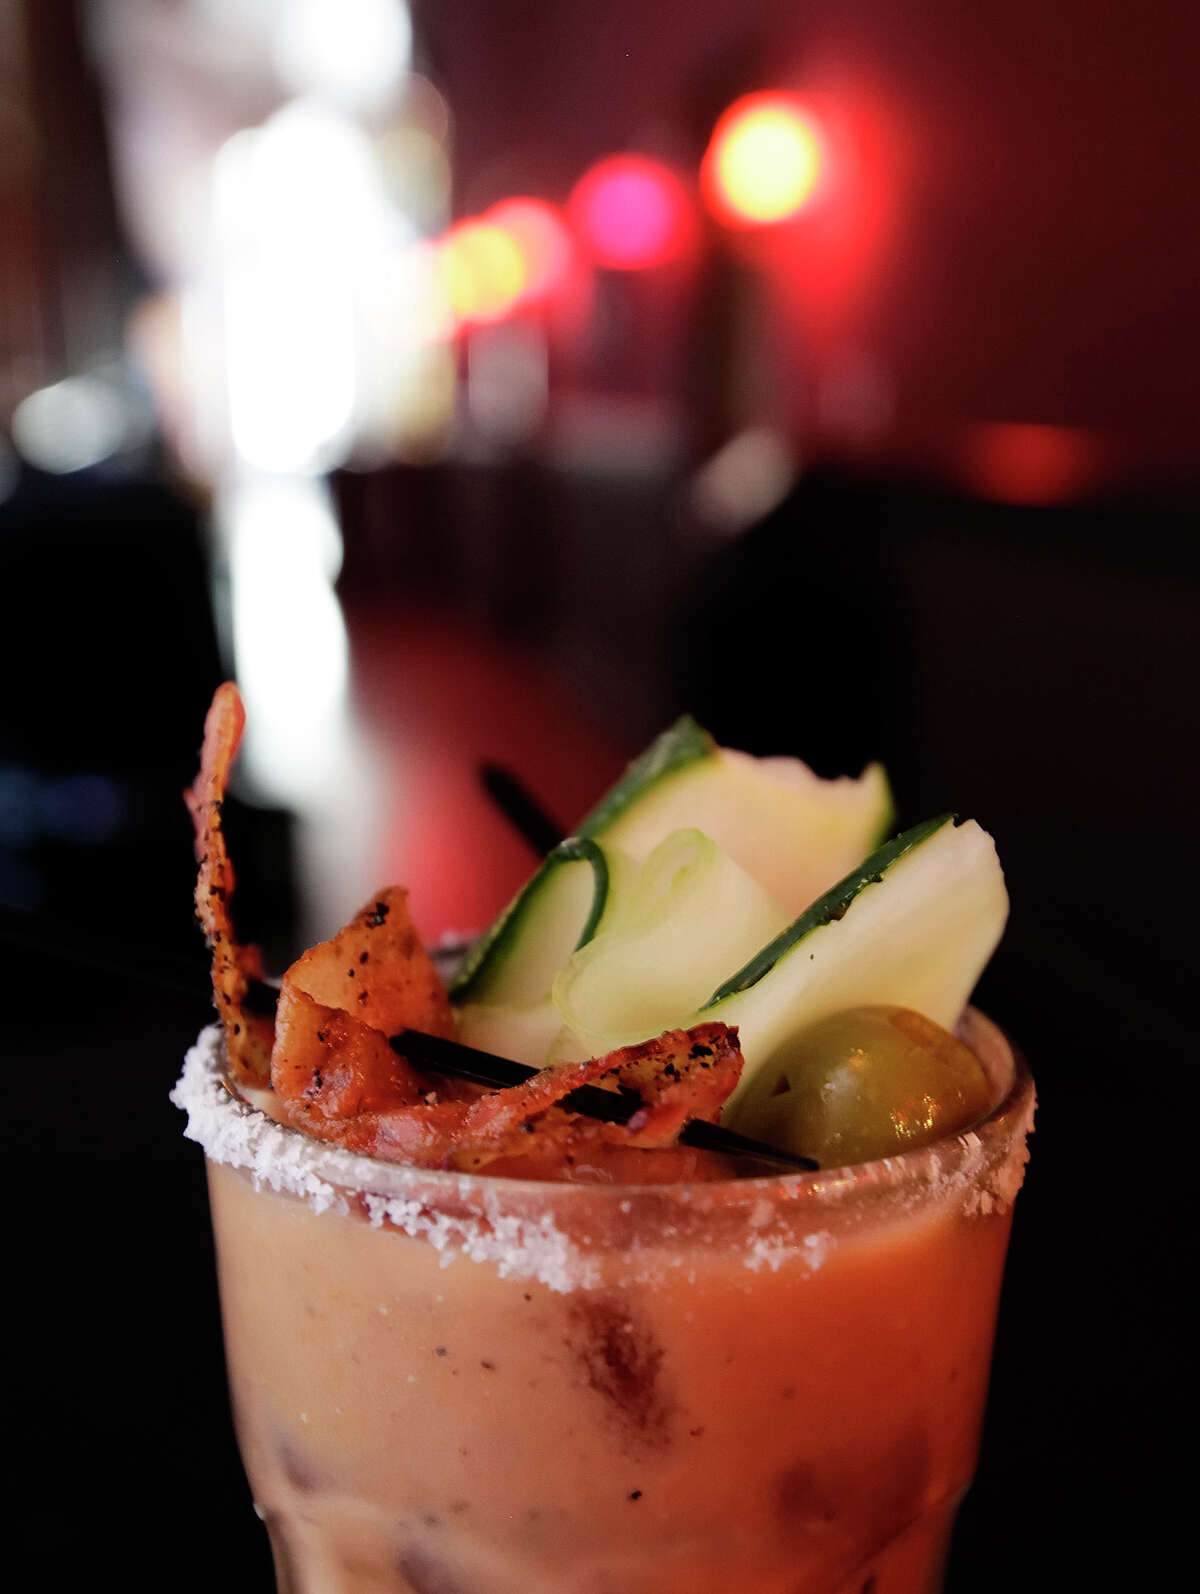 The SoHo bloody mary with both the peppered bacon and cucumber olive garnish at SoHo Wine & Martini Bar.